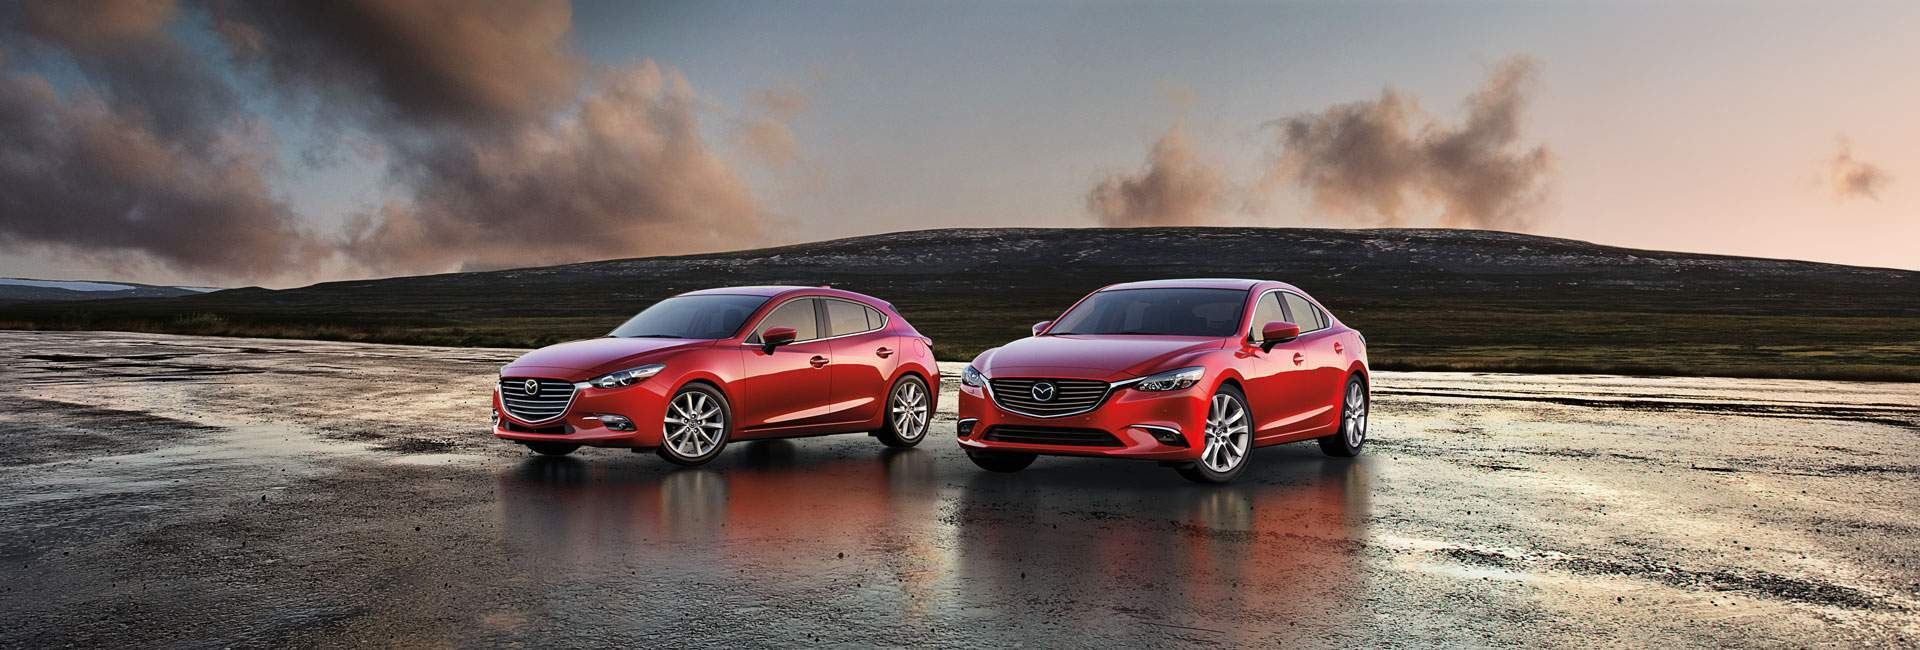 Save on new 2017 Mazda3s